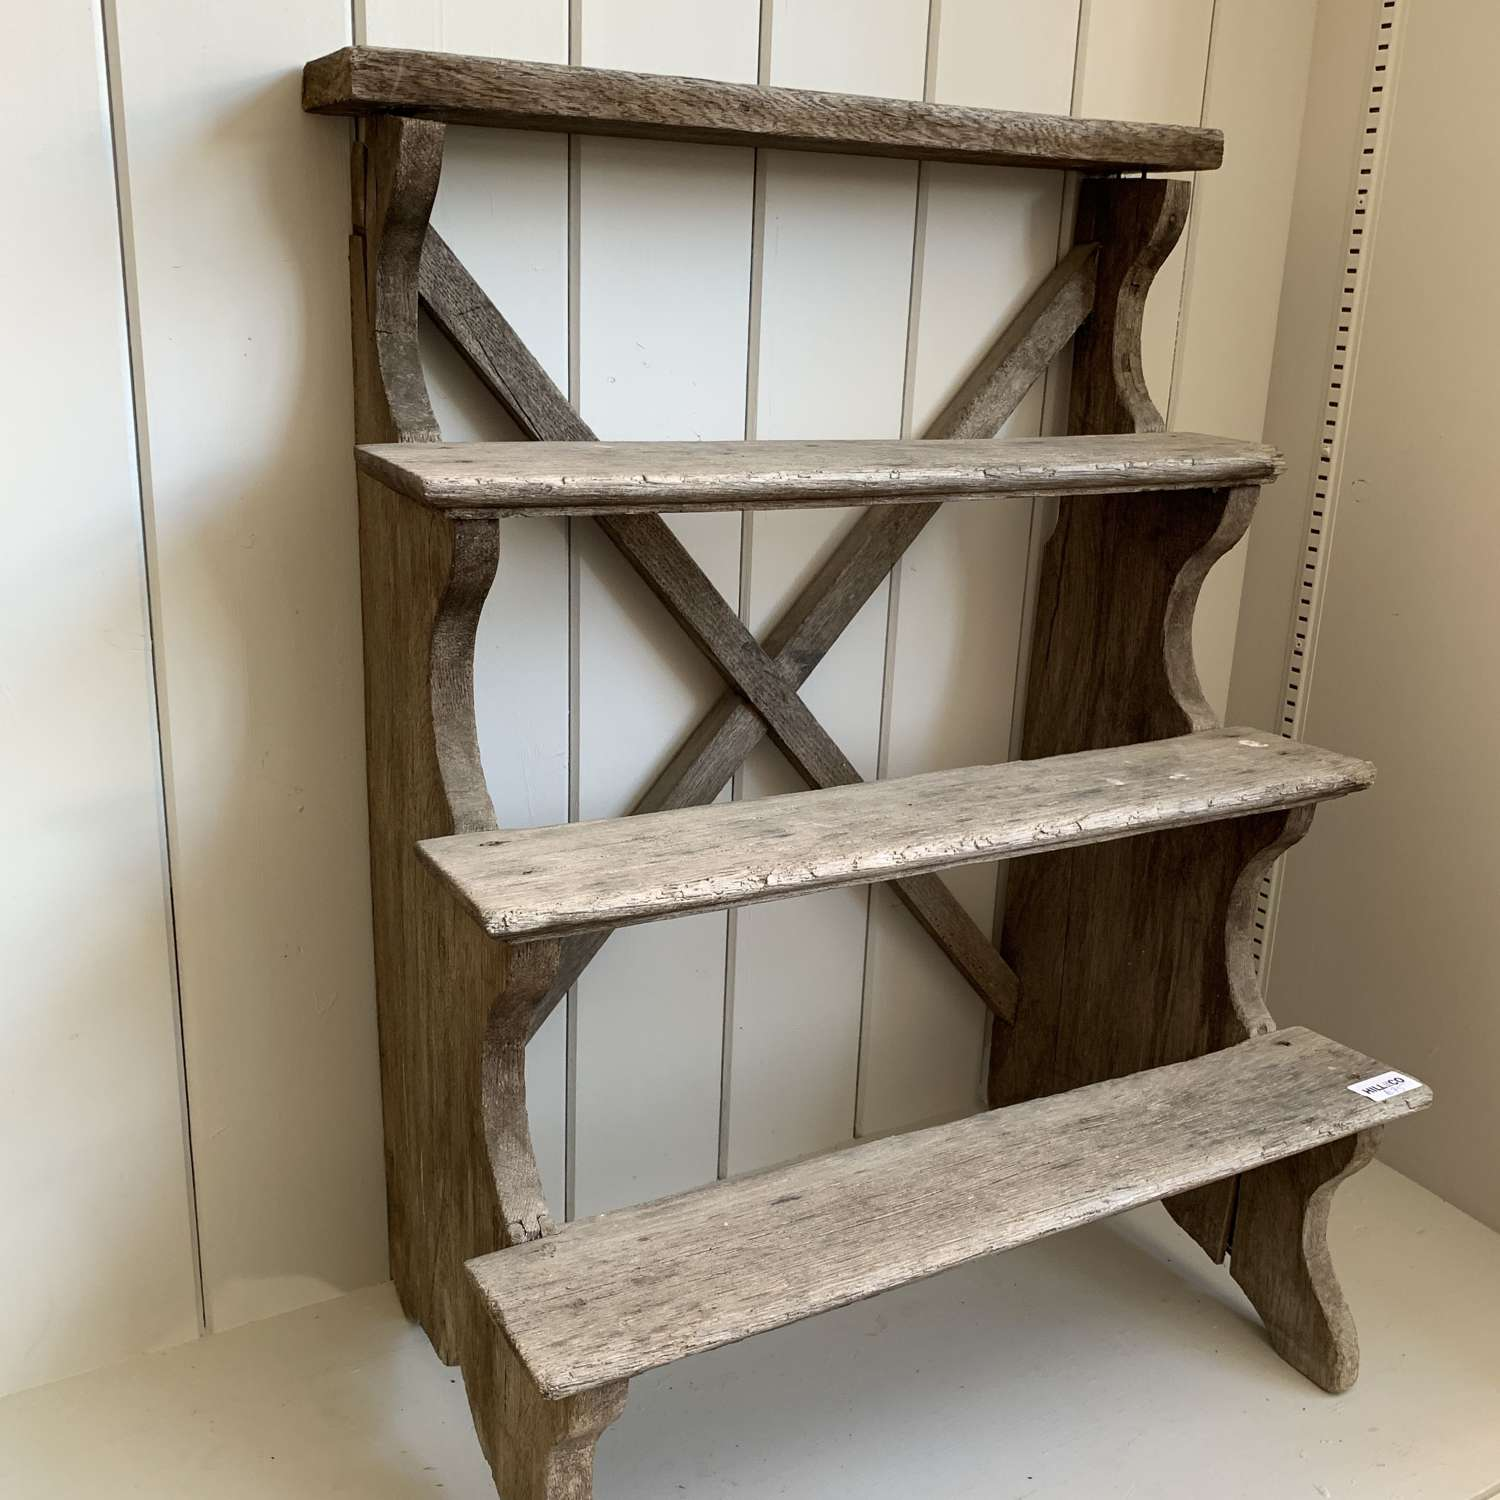 Rustic wooden display shelves